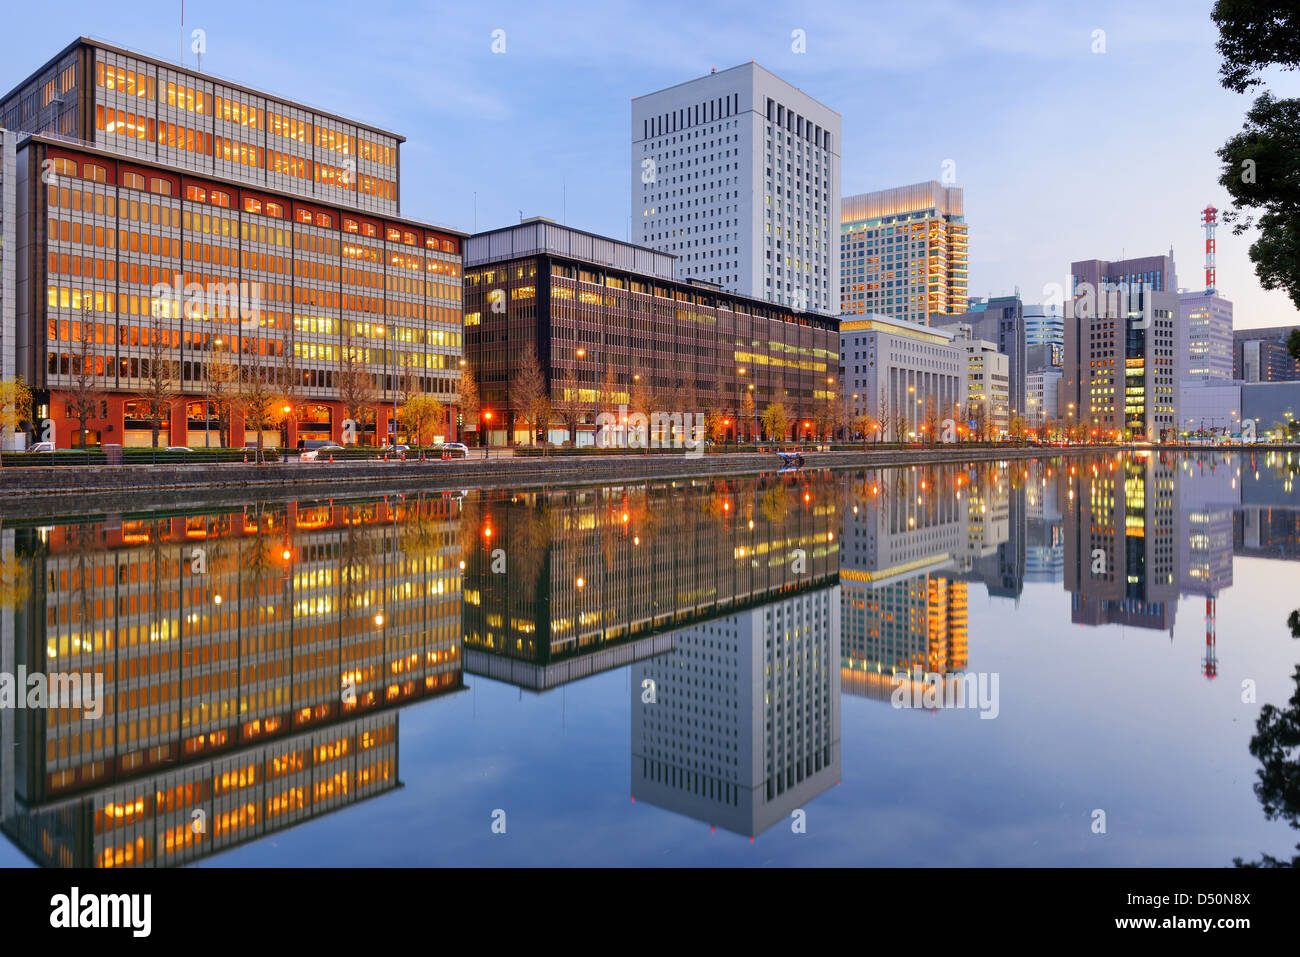 Landmark buildings reflect off the Imperial Palace moat in the Marunouchi district of Tokyo, Japan. - Stock Image